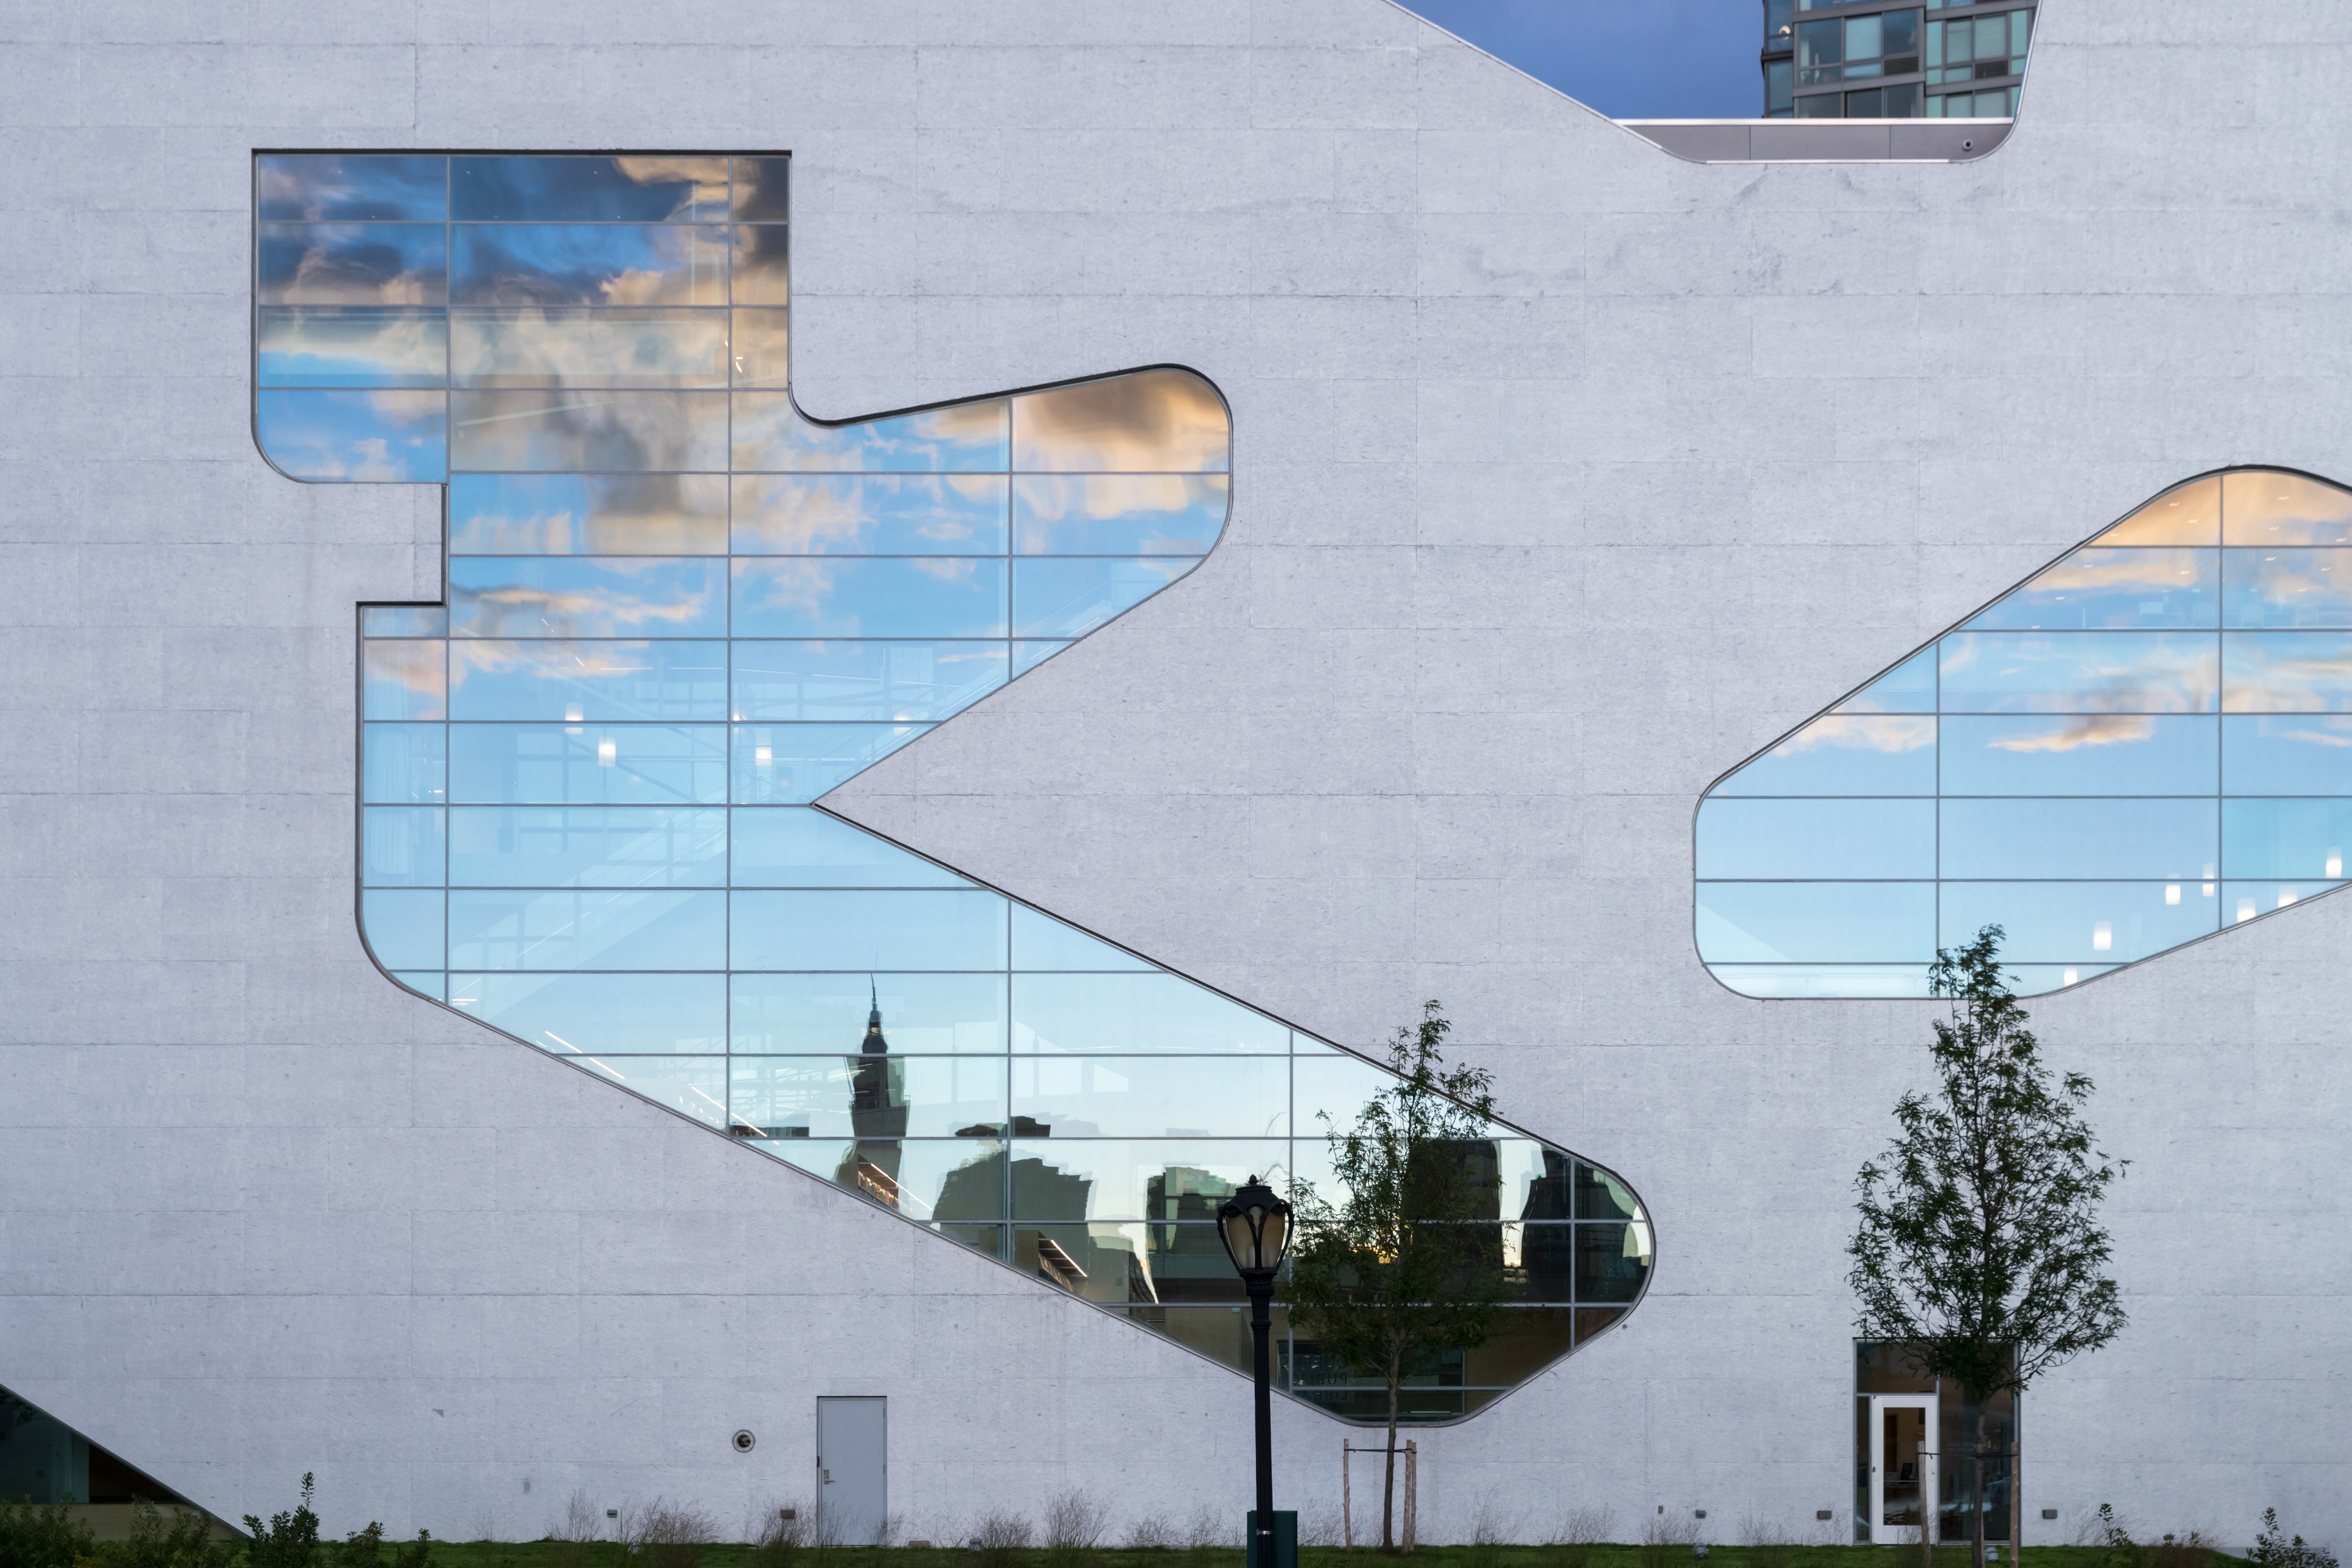 https://stevenholl.sfo2.digitaloceanspaces.com/uploads/projects/project-images/IB4.jpg